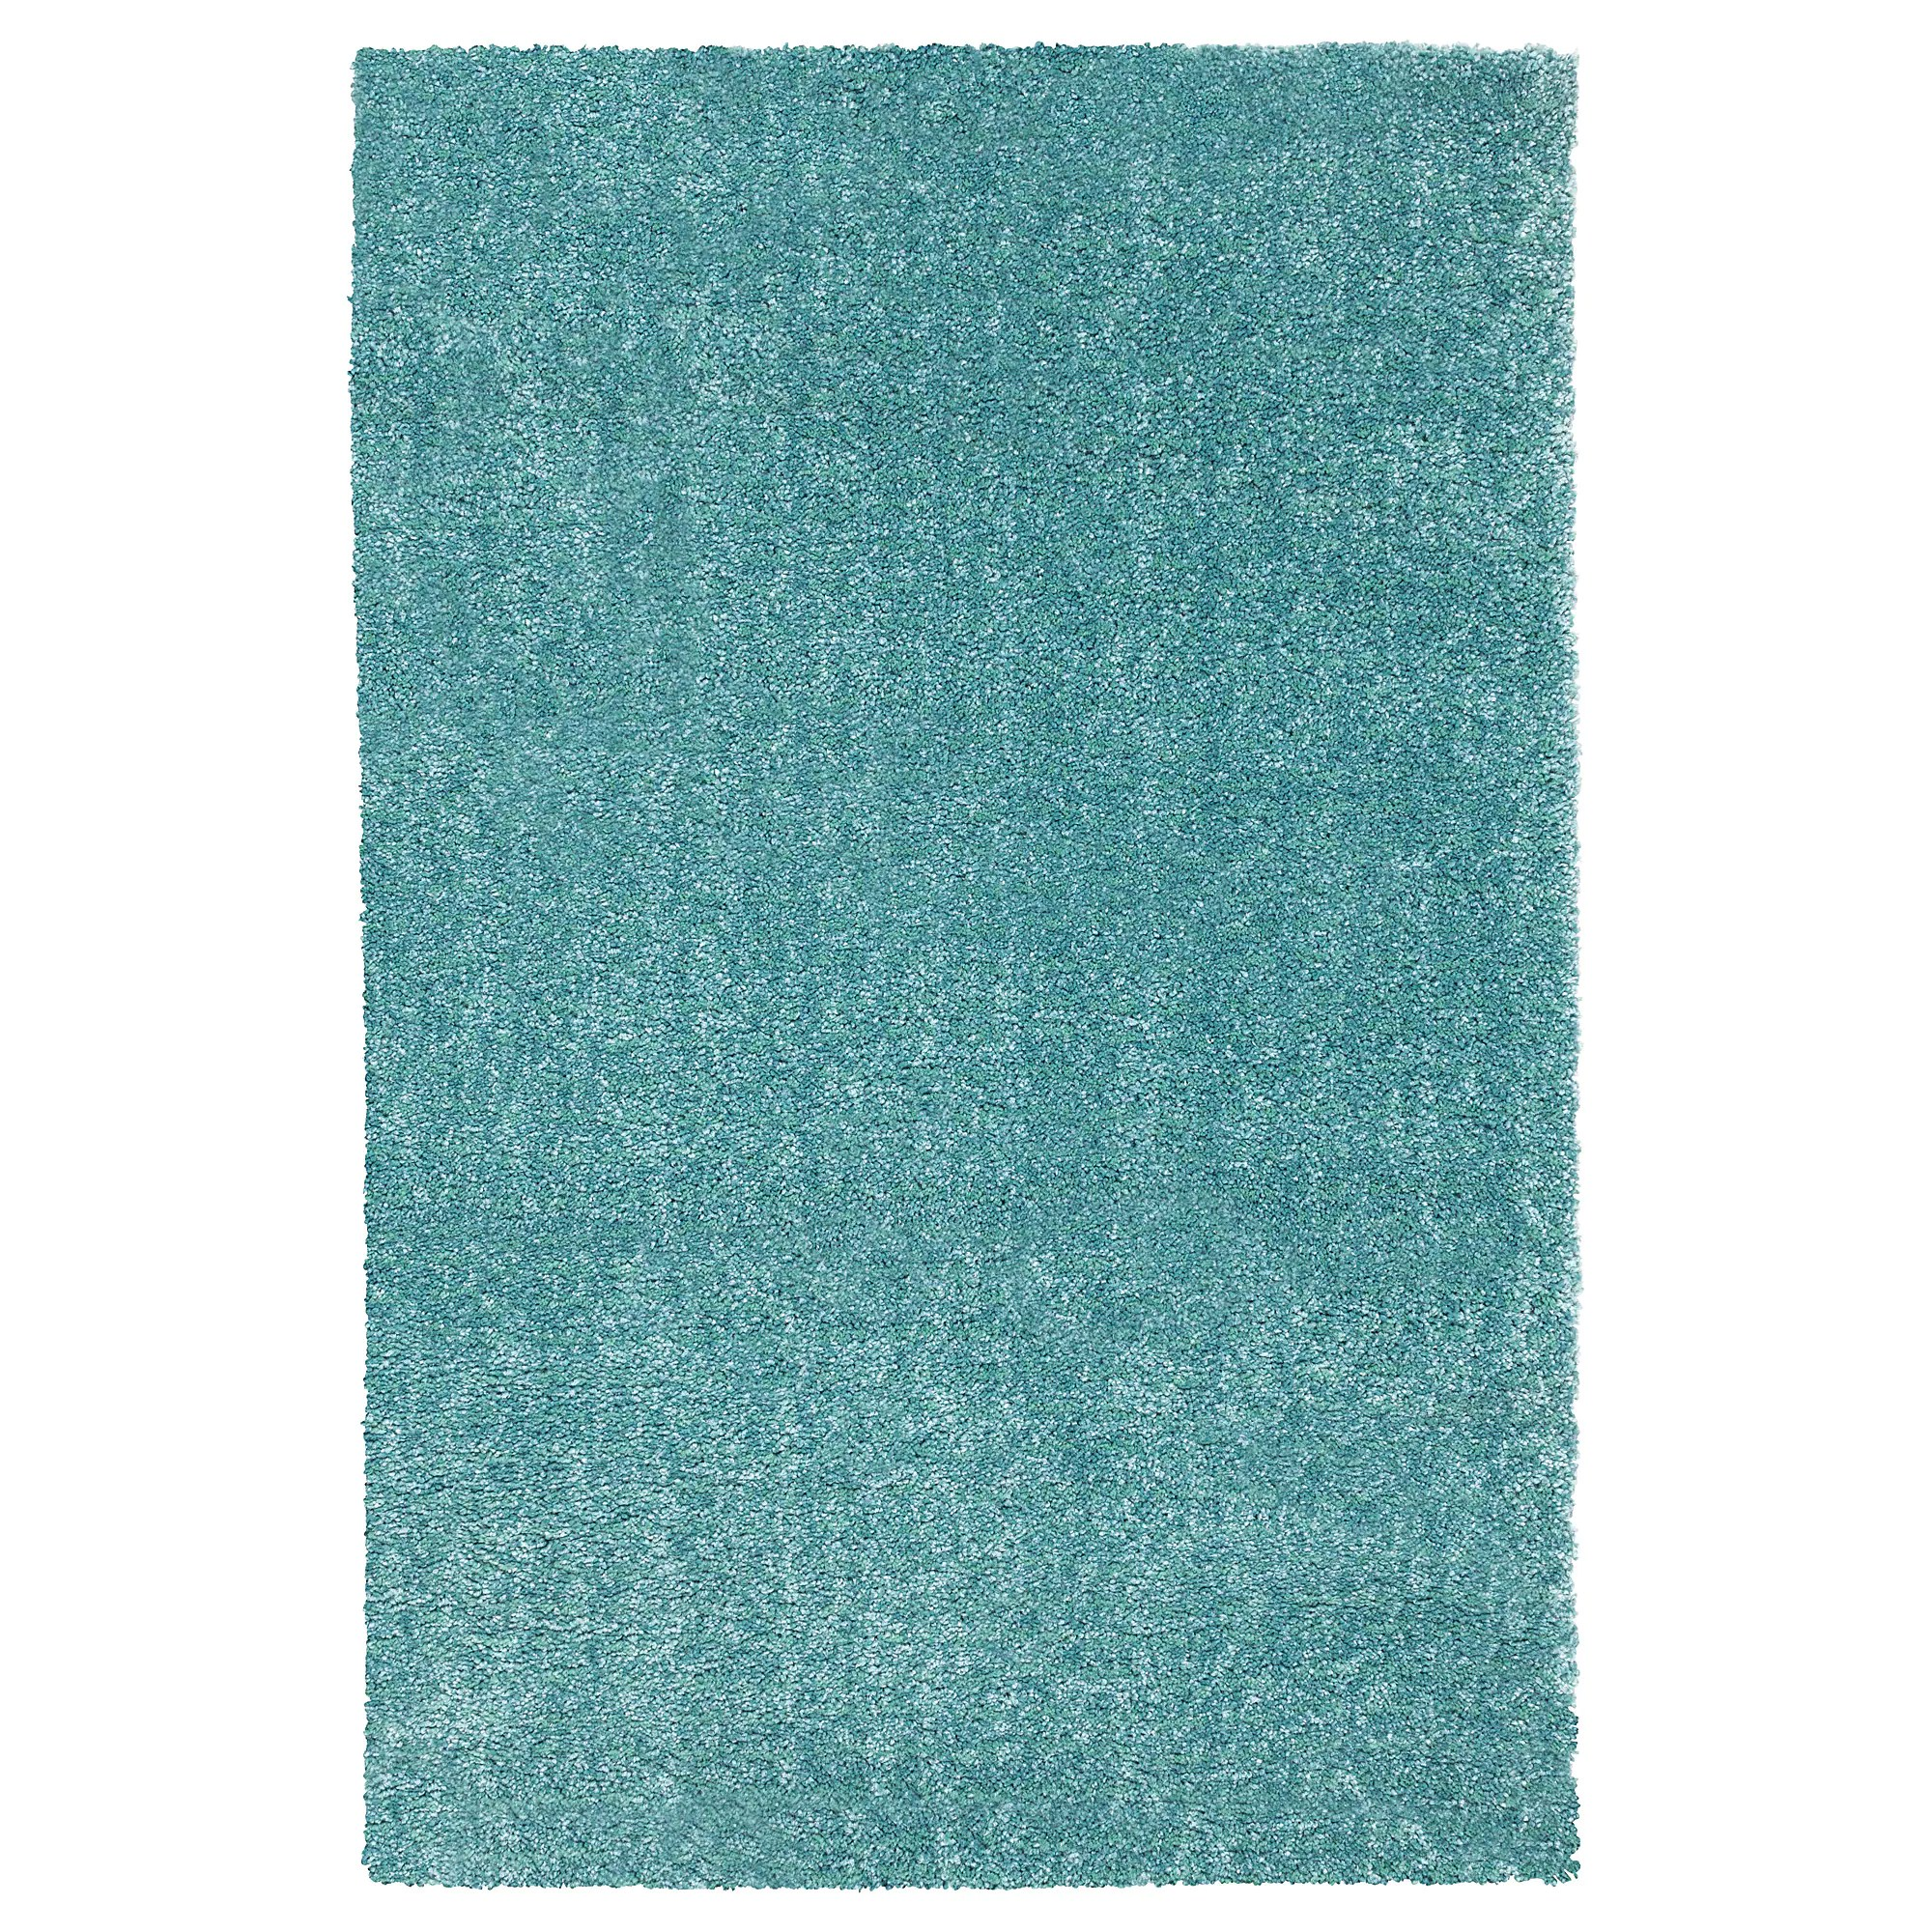 Ikea Teppich 2014 Langsted Rug Low Pile Turquoise